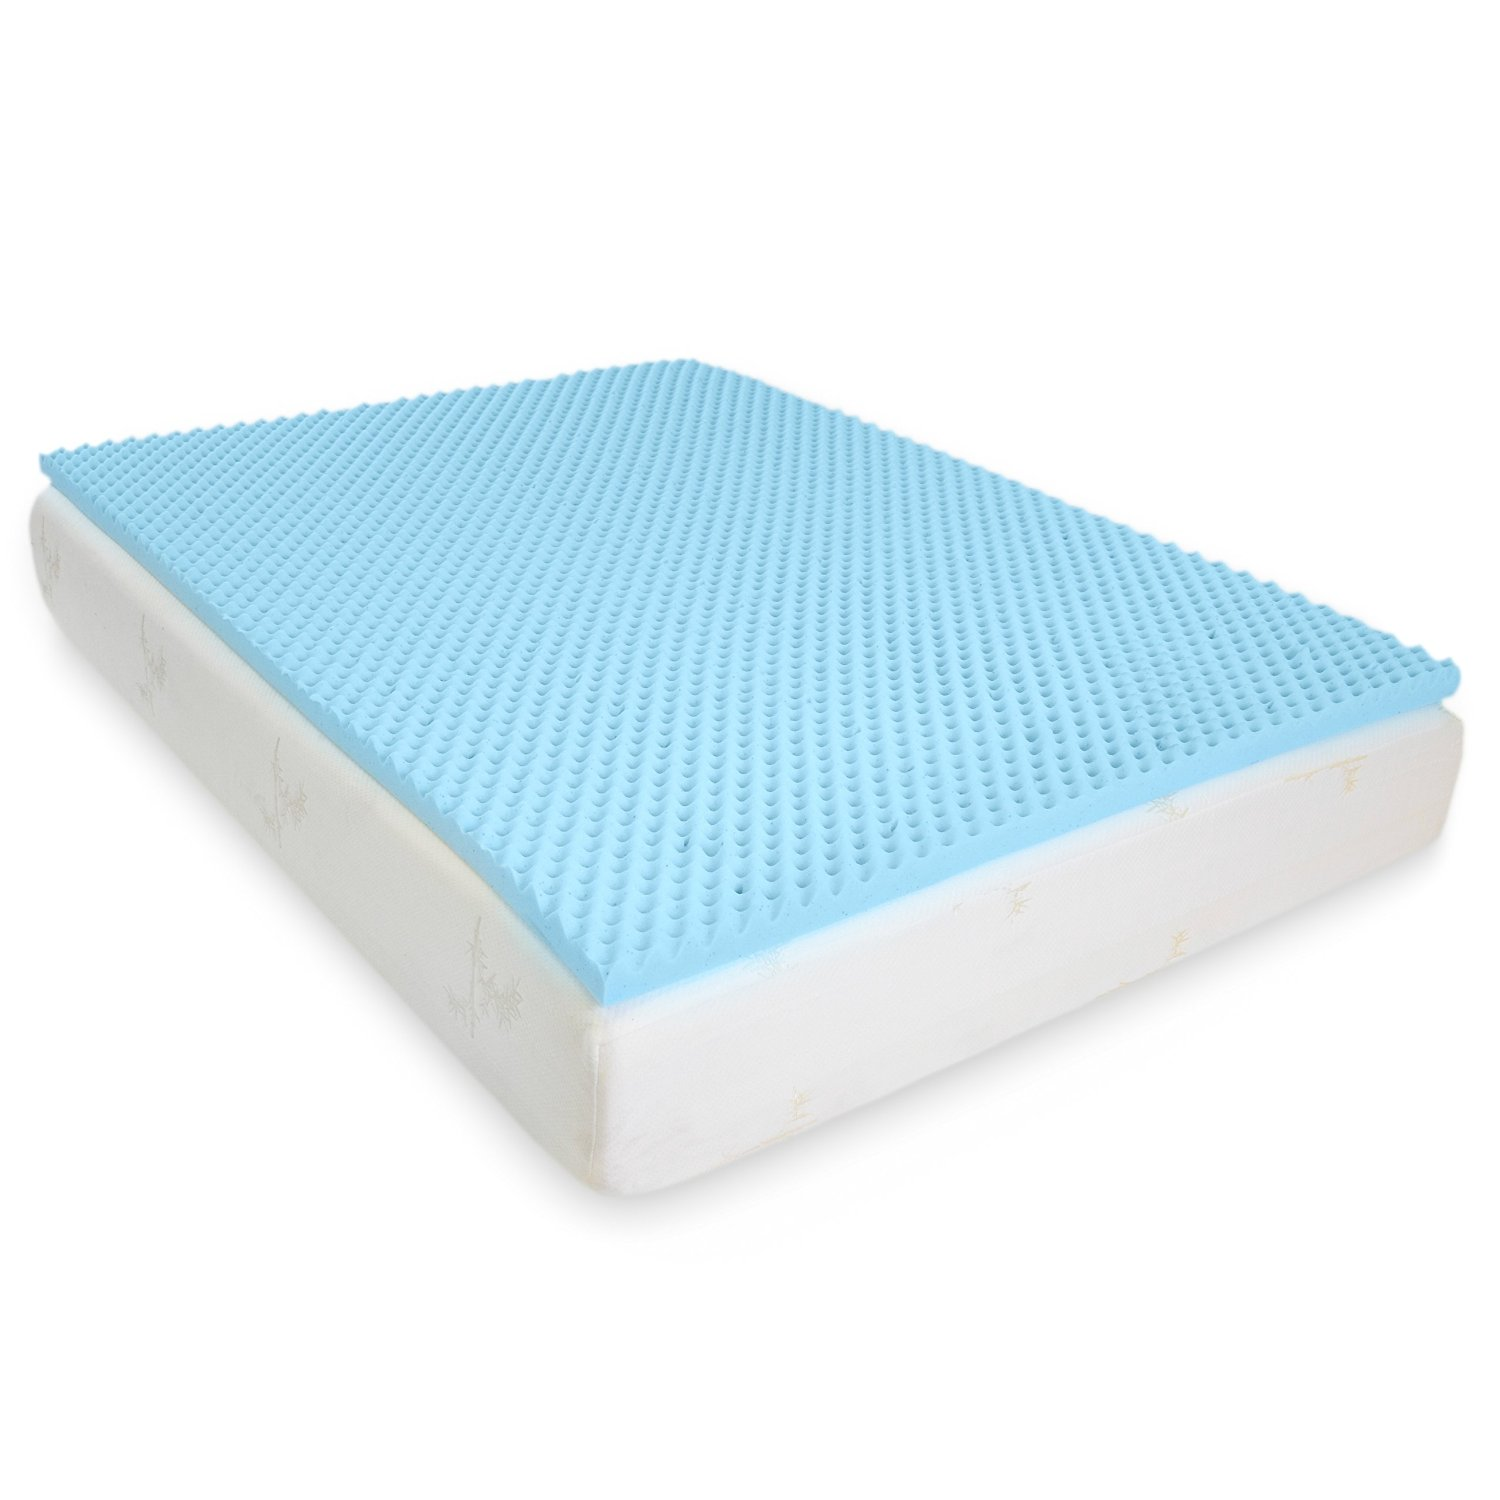 100 gel foam mattress hybrid mattress tacoma wa foam mattress tacoma gel foam mattress Top rated memory foam mattress